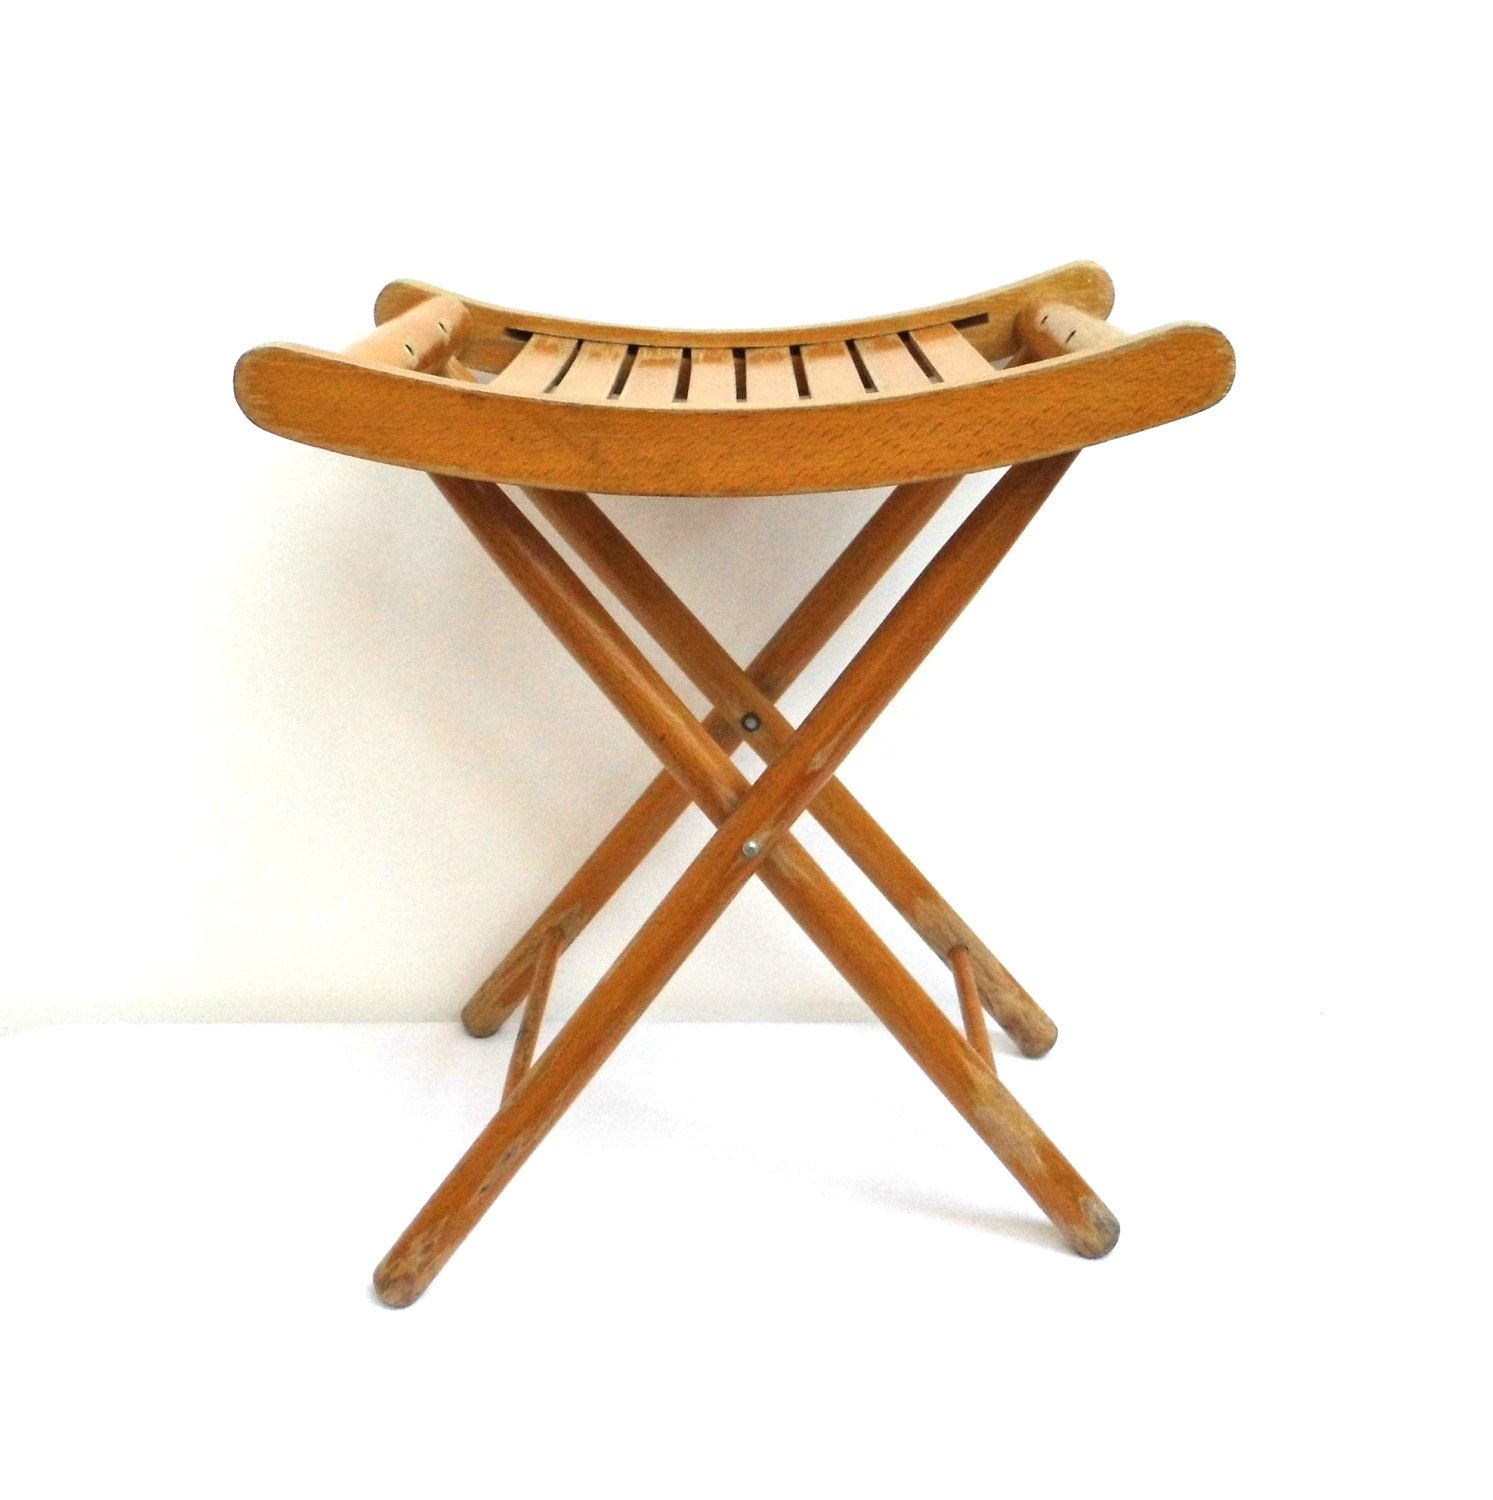 Vintage Wood Folding Chair Stool Patio Slatted Seat Small Wooden End Side  Table Coffee Table Child Chair Rustic Decor Mid Century Furniture By  WoodHistory ...